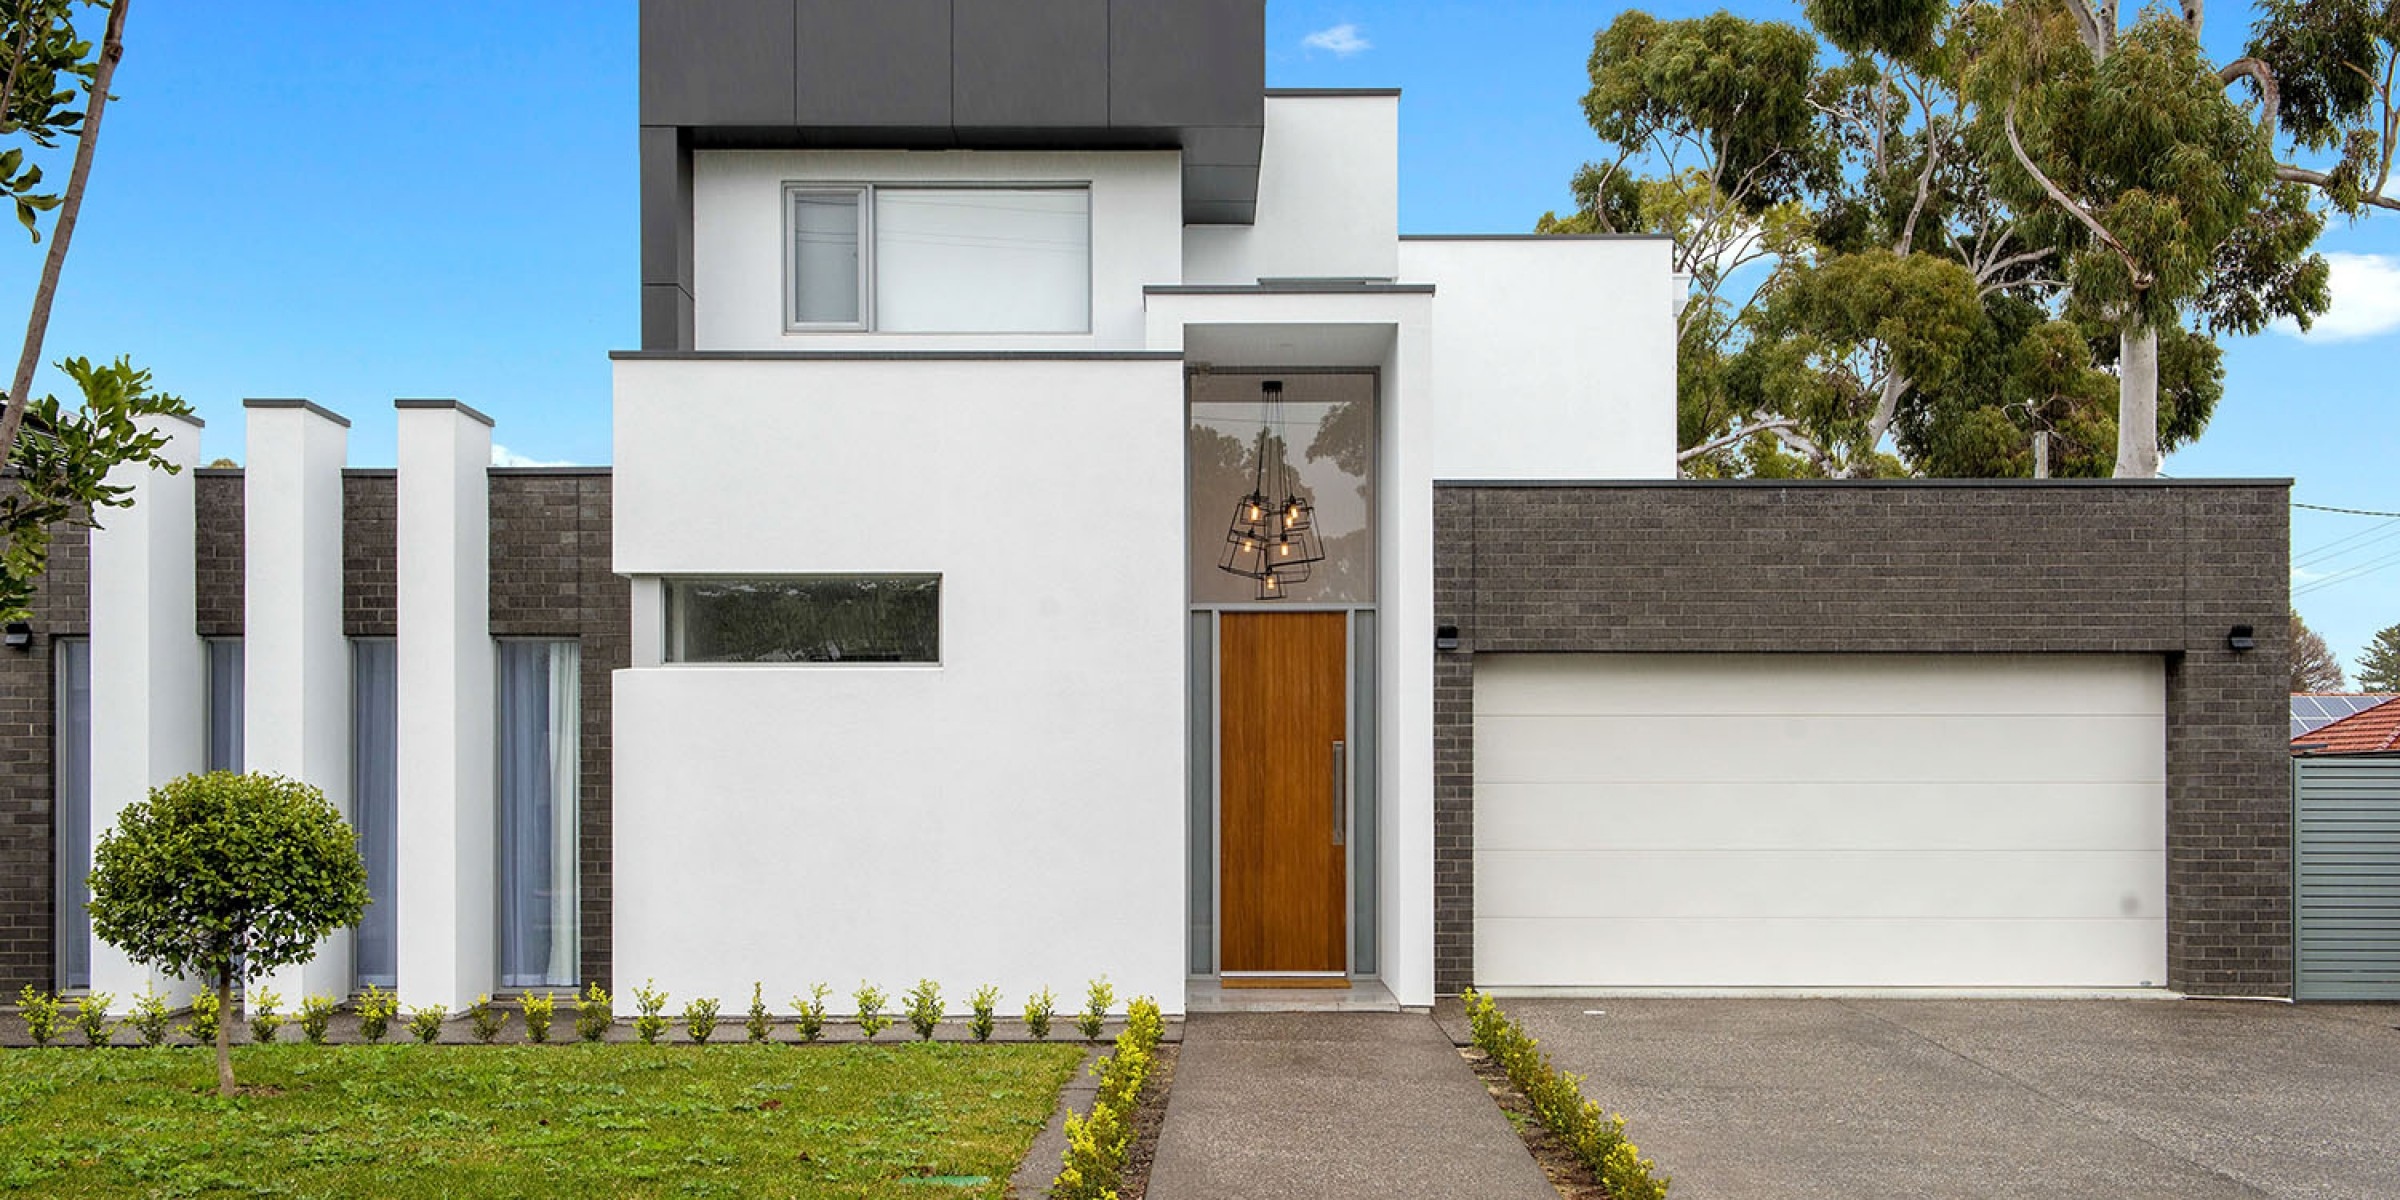 Brookside Drive Residence Tranmere architectural facade